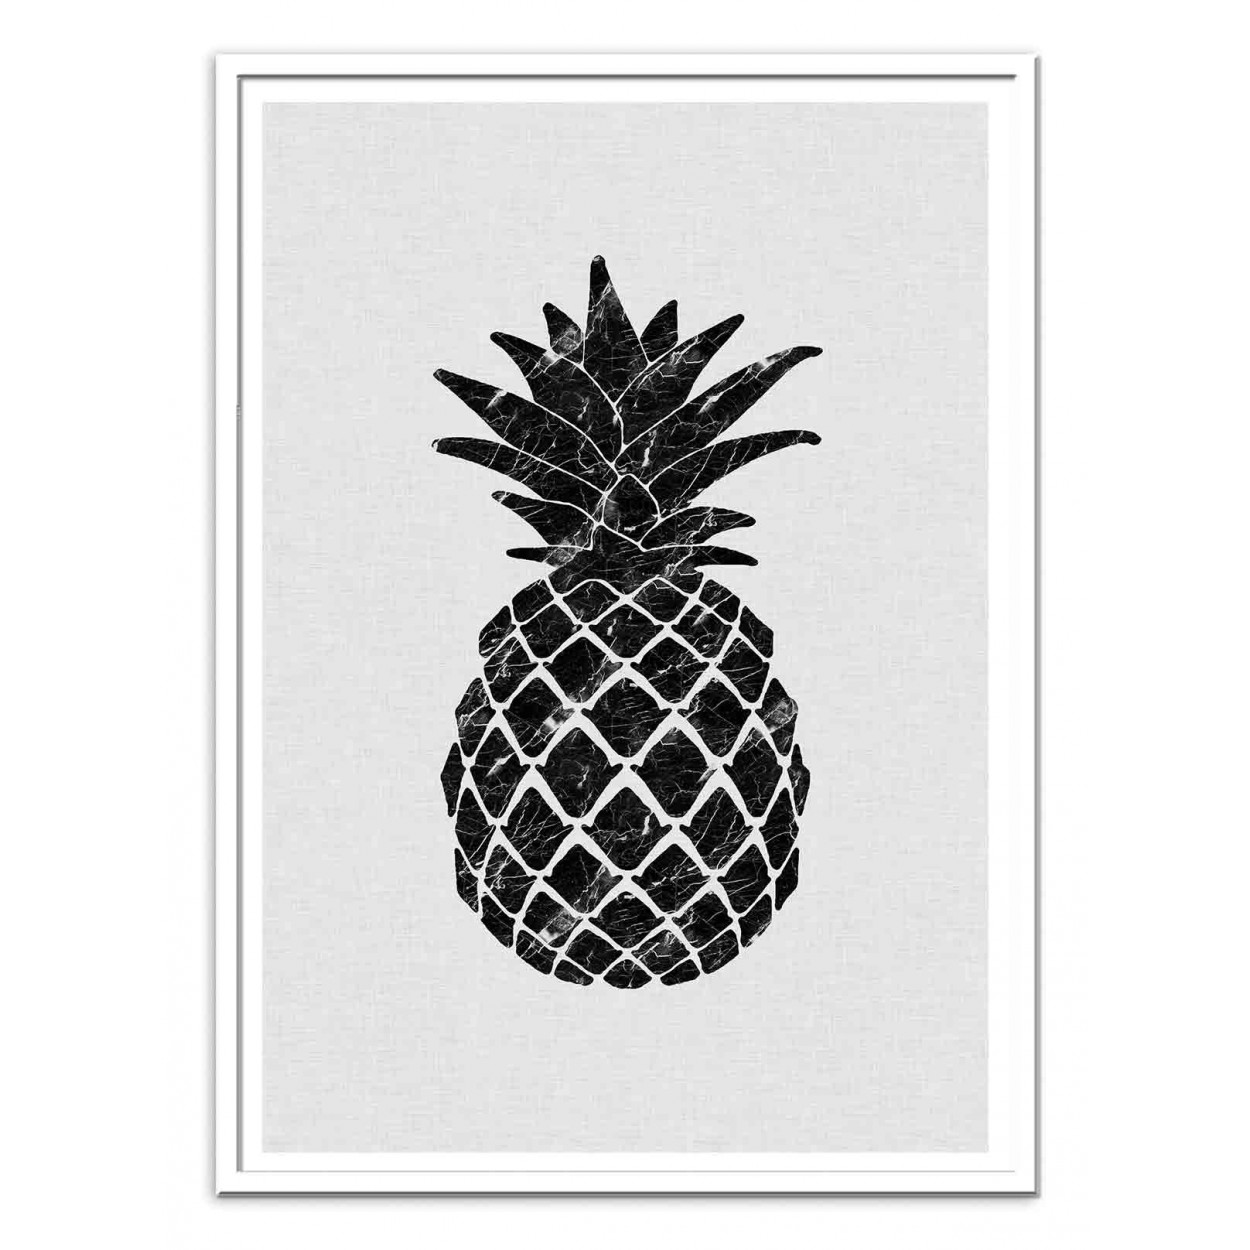 affiche d 39 art tableau et poster design d 39 un ananas en noir et blanc. Black Bedroom Furniture Sets. Home Design Ideas